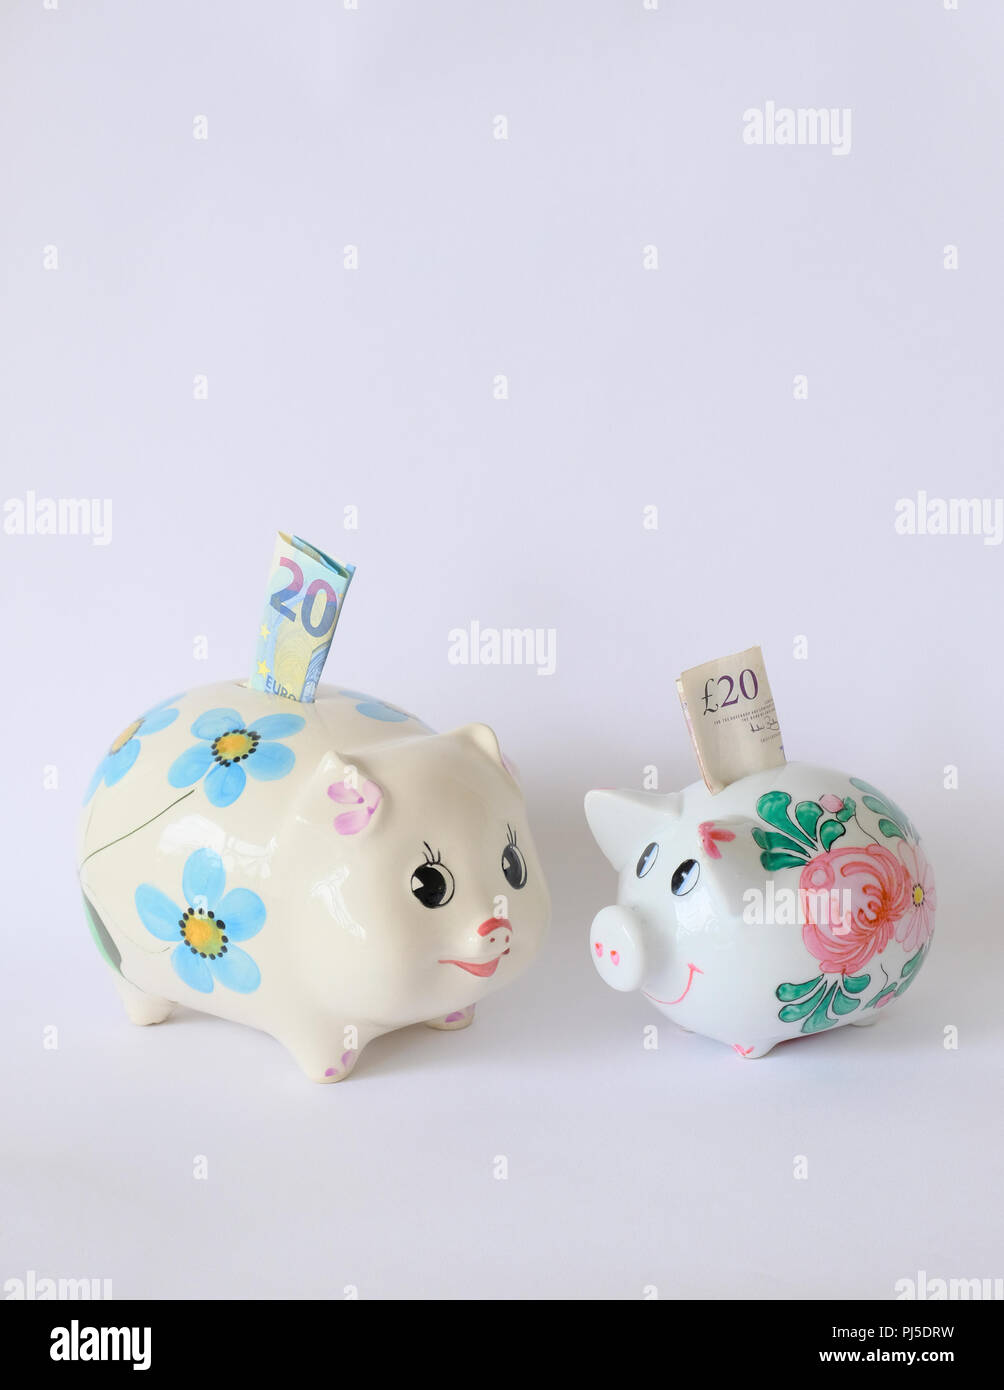 Pair of china piggy banks the larger with a 20 Euro note and the smaller with a 20 pound note - Stock Image